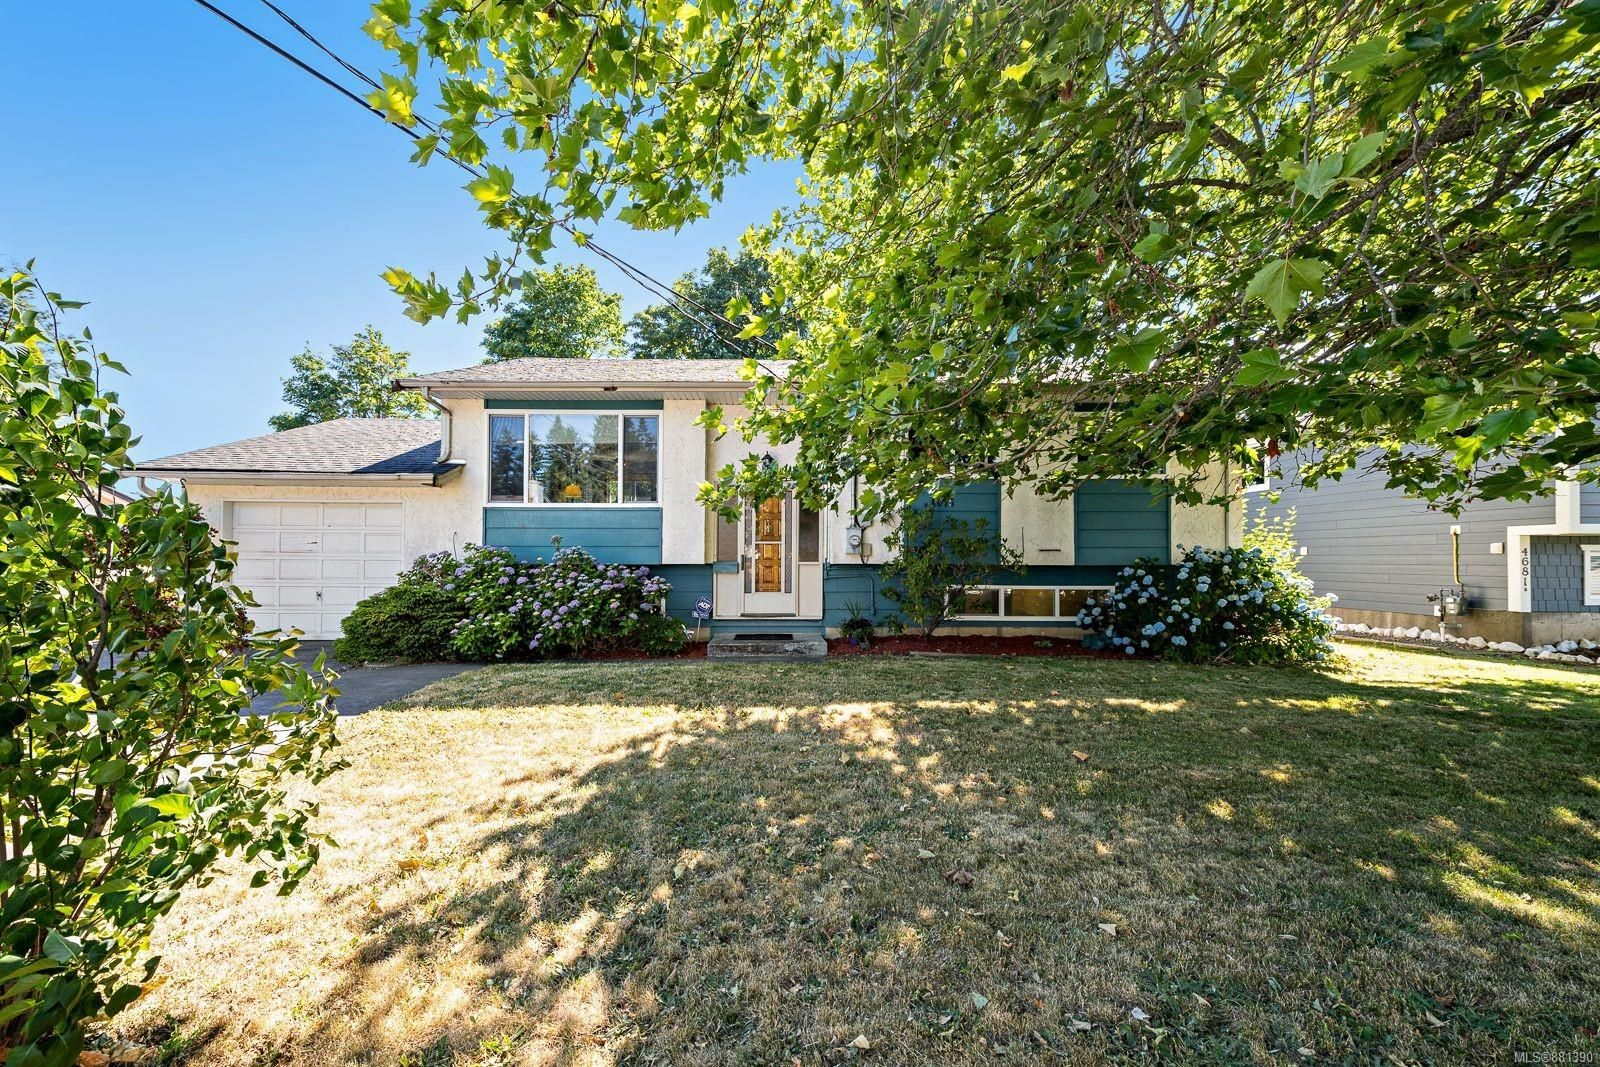 Main Photo: 4675 Macintyre Ave in : CV Courtenay East House for sale (Comox Valley)  : MLS®# 881390